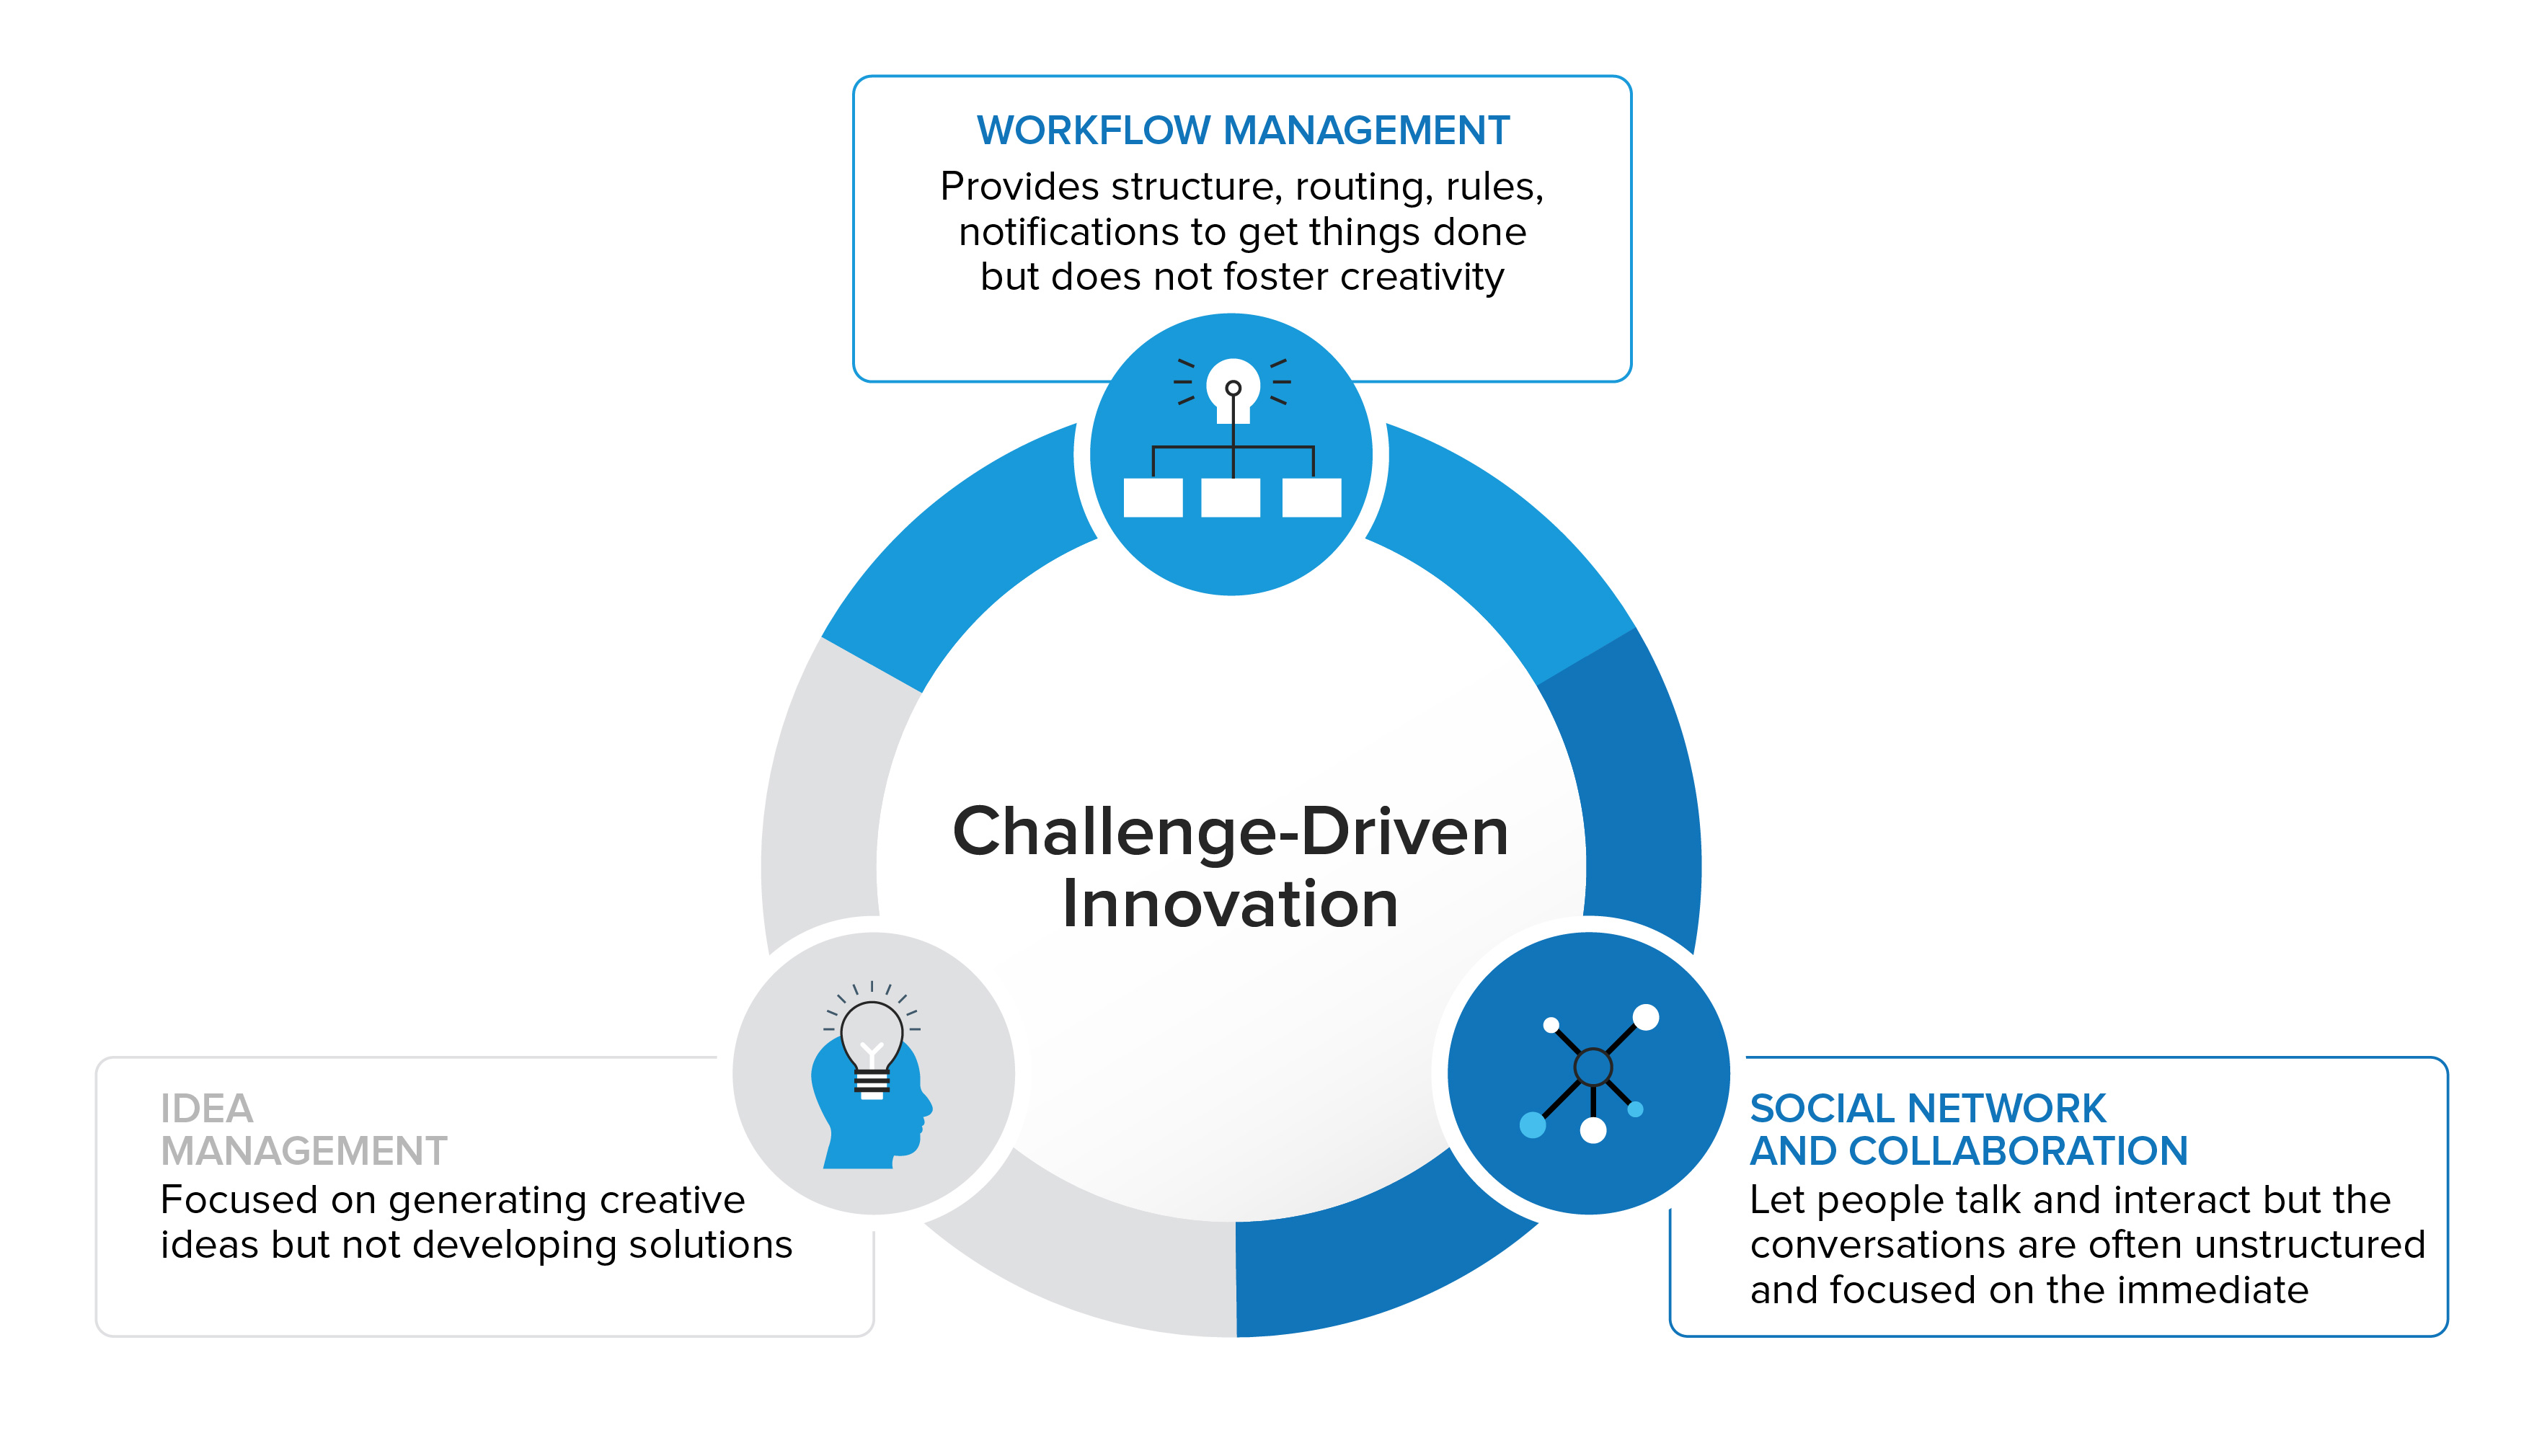 Challenge-Driven Innovation